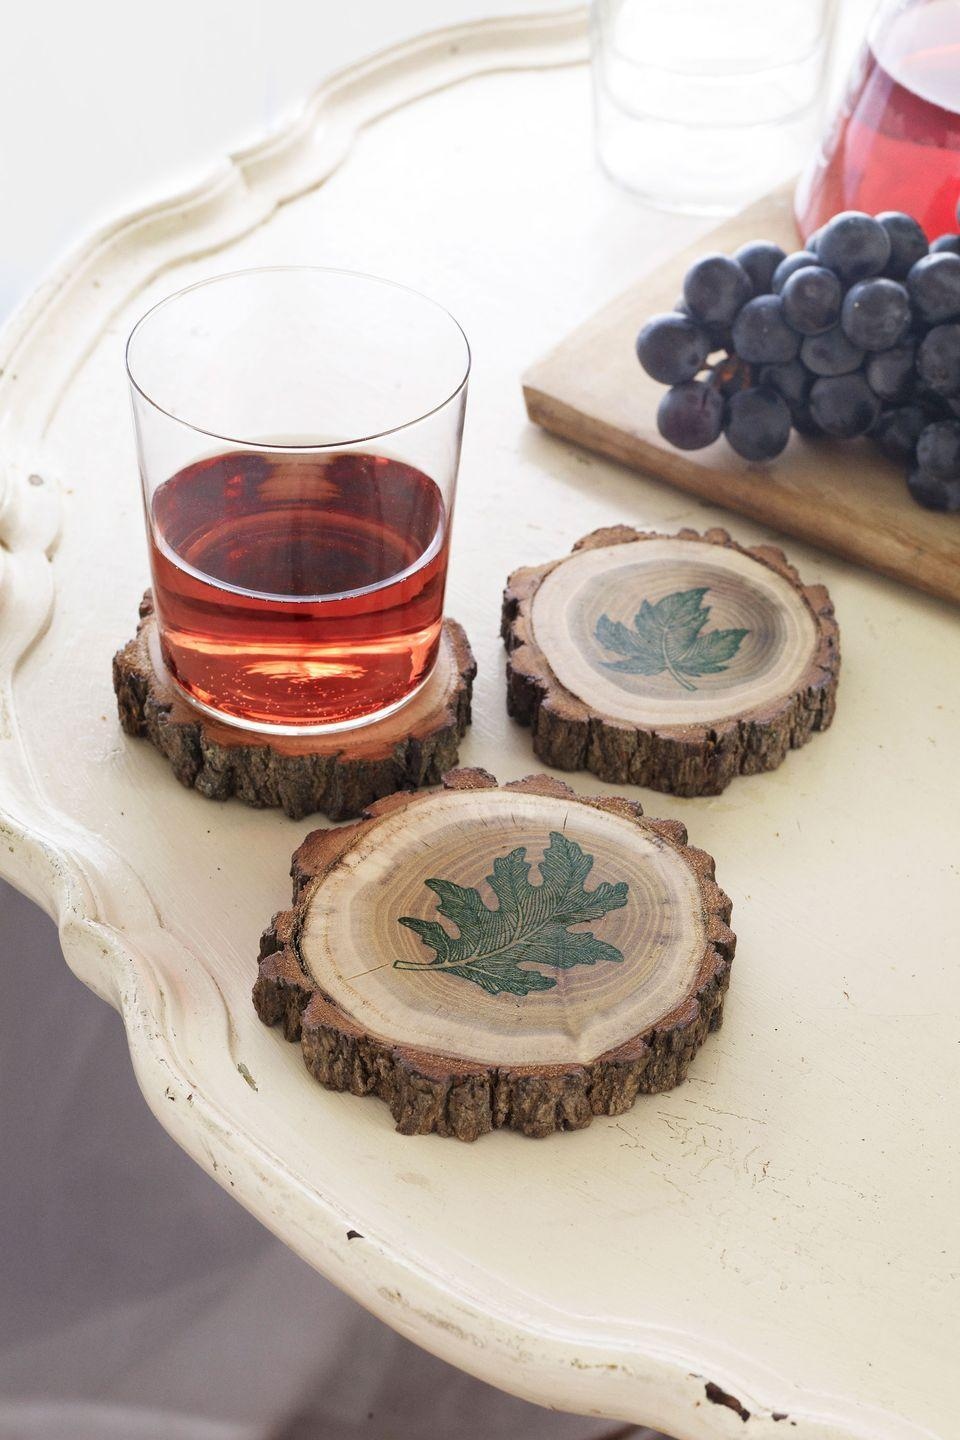 """<p>To make these rustic drink perches, you'll need a <span class=""""redactor-unlink"""">tree limb</span> that's roughly three inches in diameter. Saw the branch into slices about 3/4-inch thick—or have a hardware store do it for you—and lightly sand each wood disk. Create the leaf motifs shown by pressing an inked stamp onto each coaster. Let dry for five minutes, then coat the stamped side with a protective matte finishing spray. Allow 15 minutes of drying time before using.</p>"""